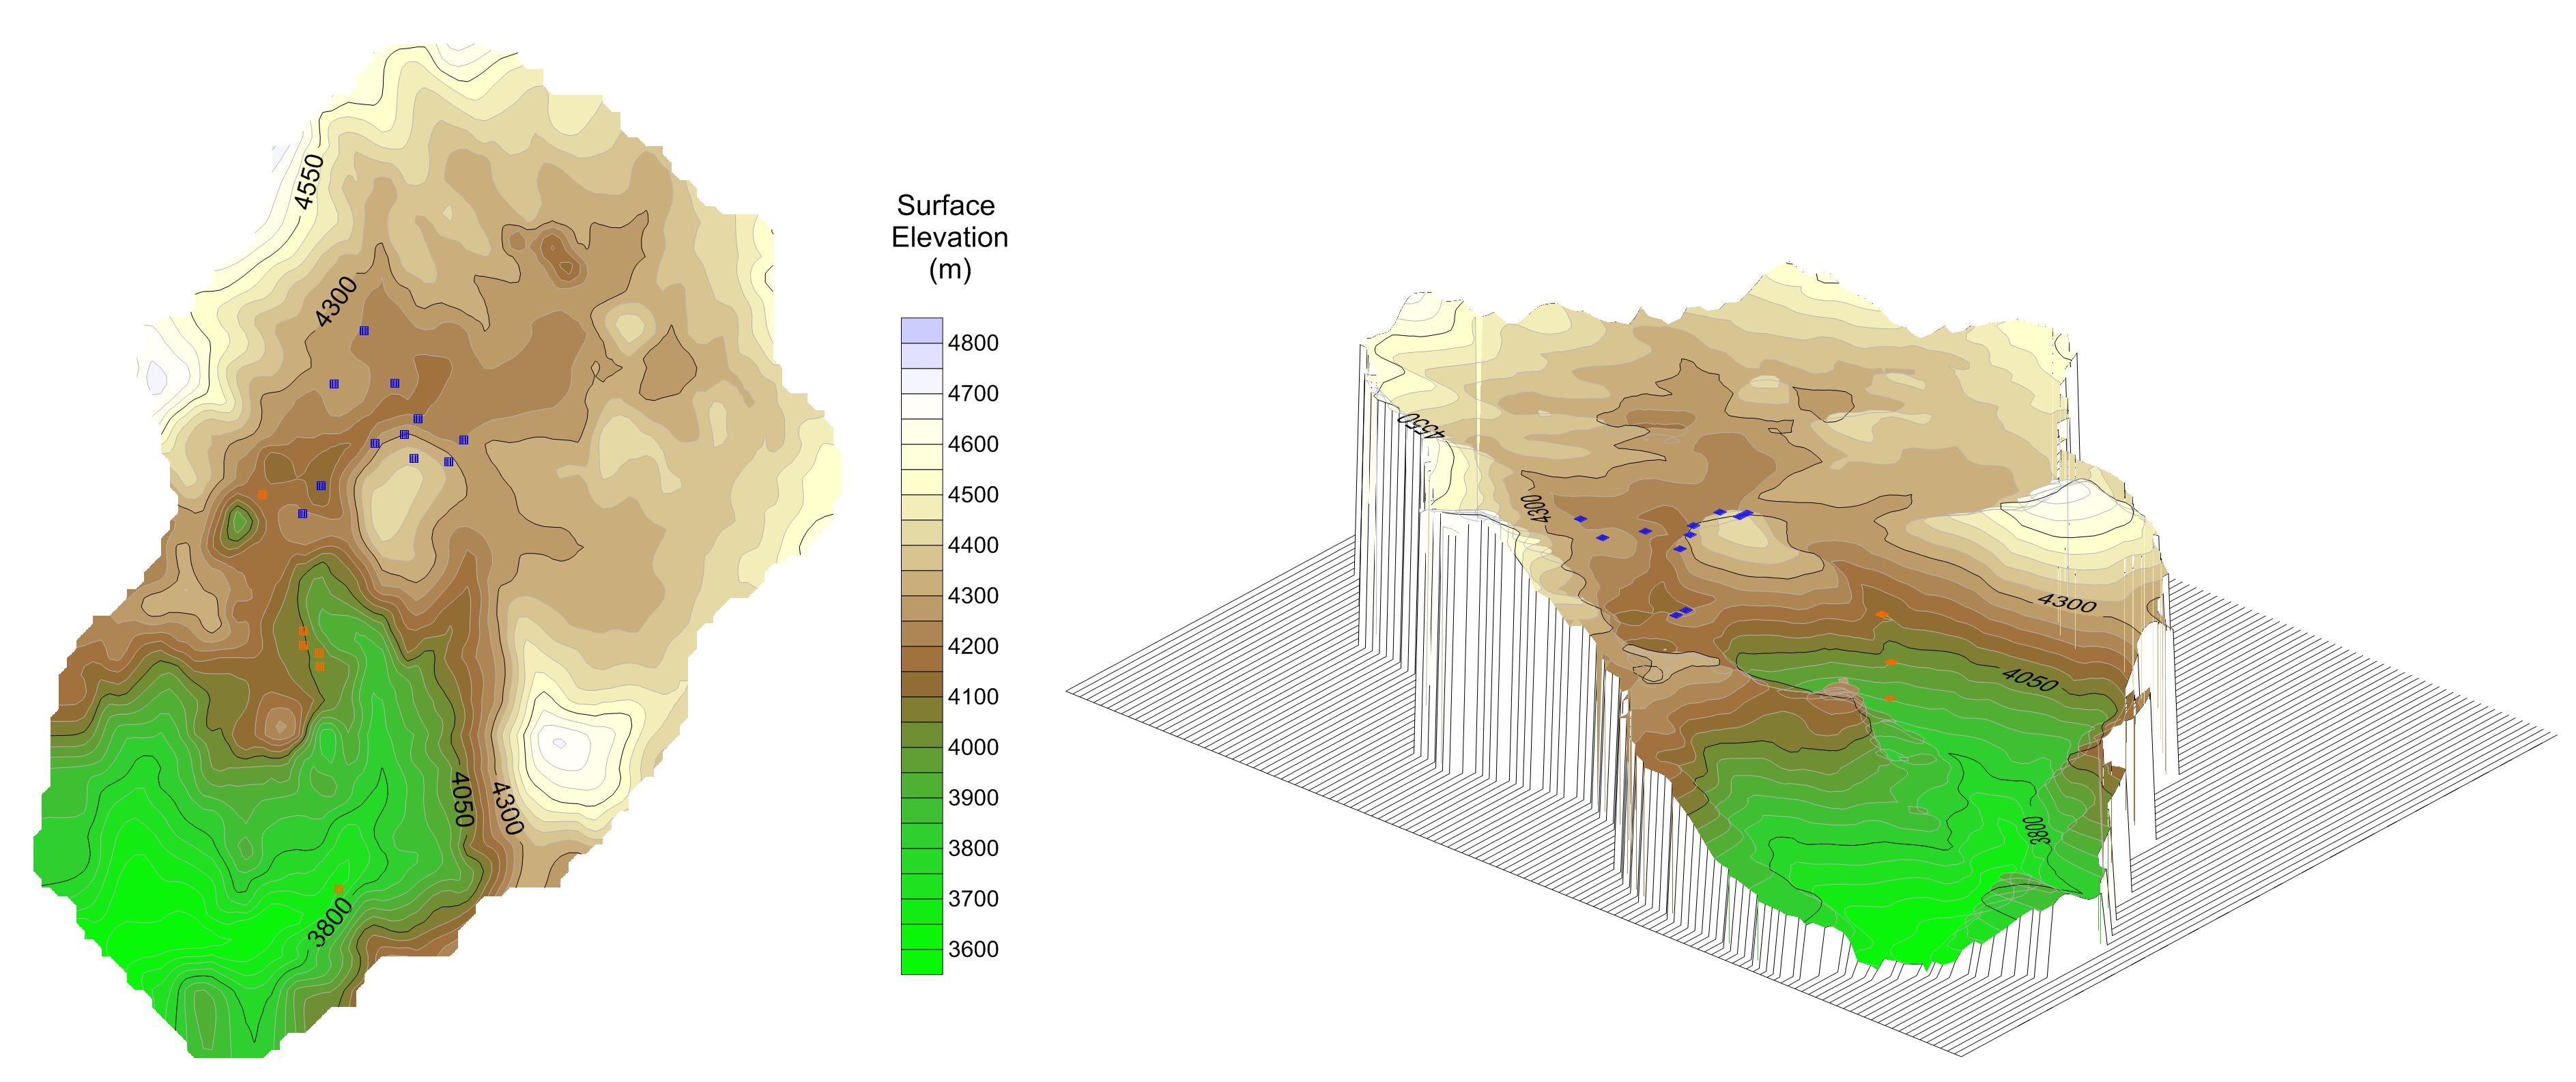 Surfer modeling and contour mapping software: Surface map of mine site displaying spring locations